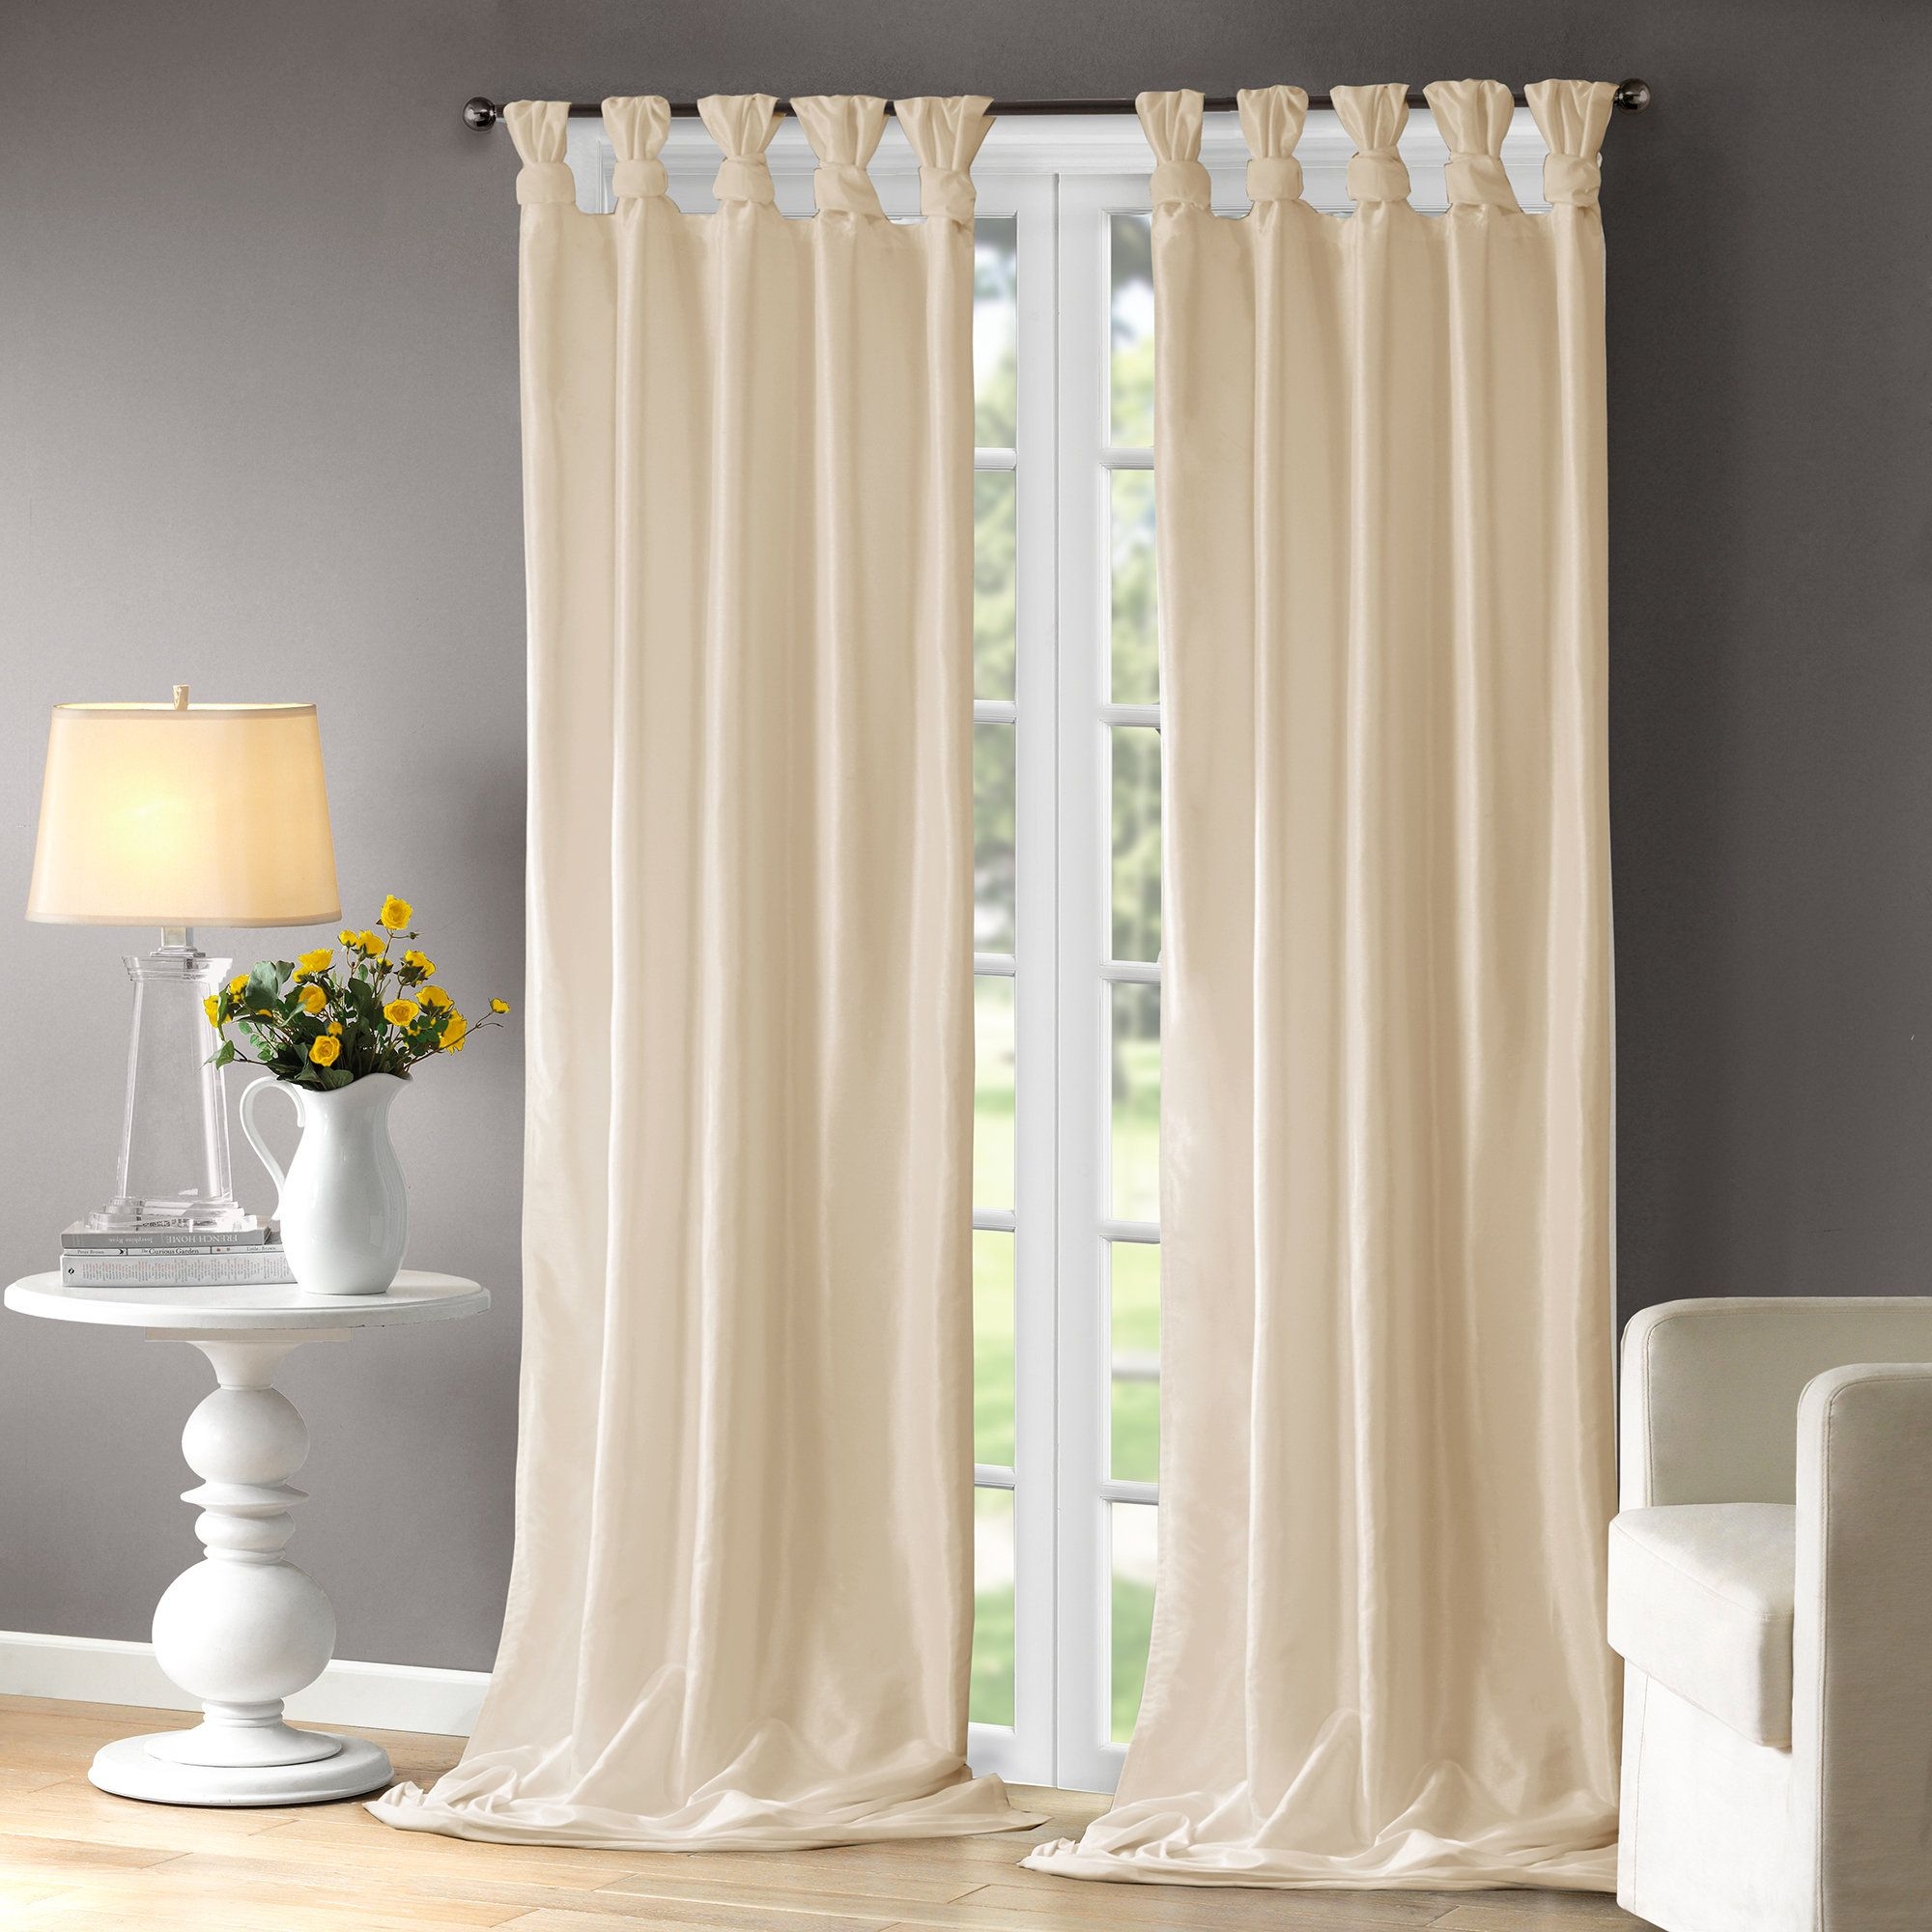 Rivau Solid Tab Top Single Curtain Panel | Window Treatments Intended For Tab Top Sheer Single Curtain Panels (View 25 of 30)